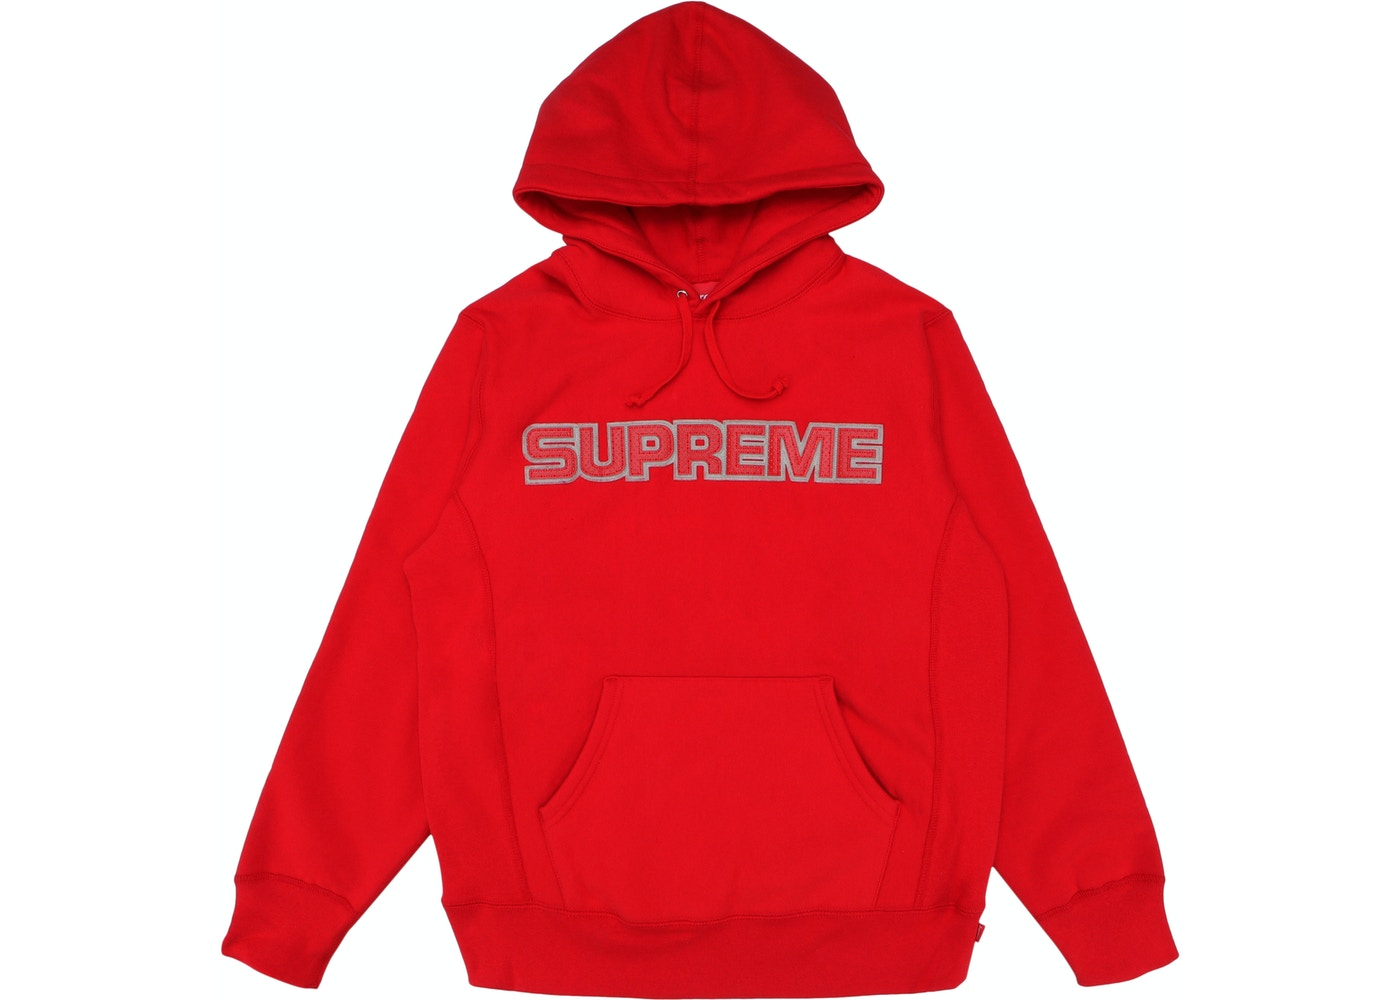 f3b530b38baf Supreme Perforated Leather Hooded Sweatshirt Red - FW18